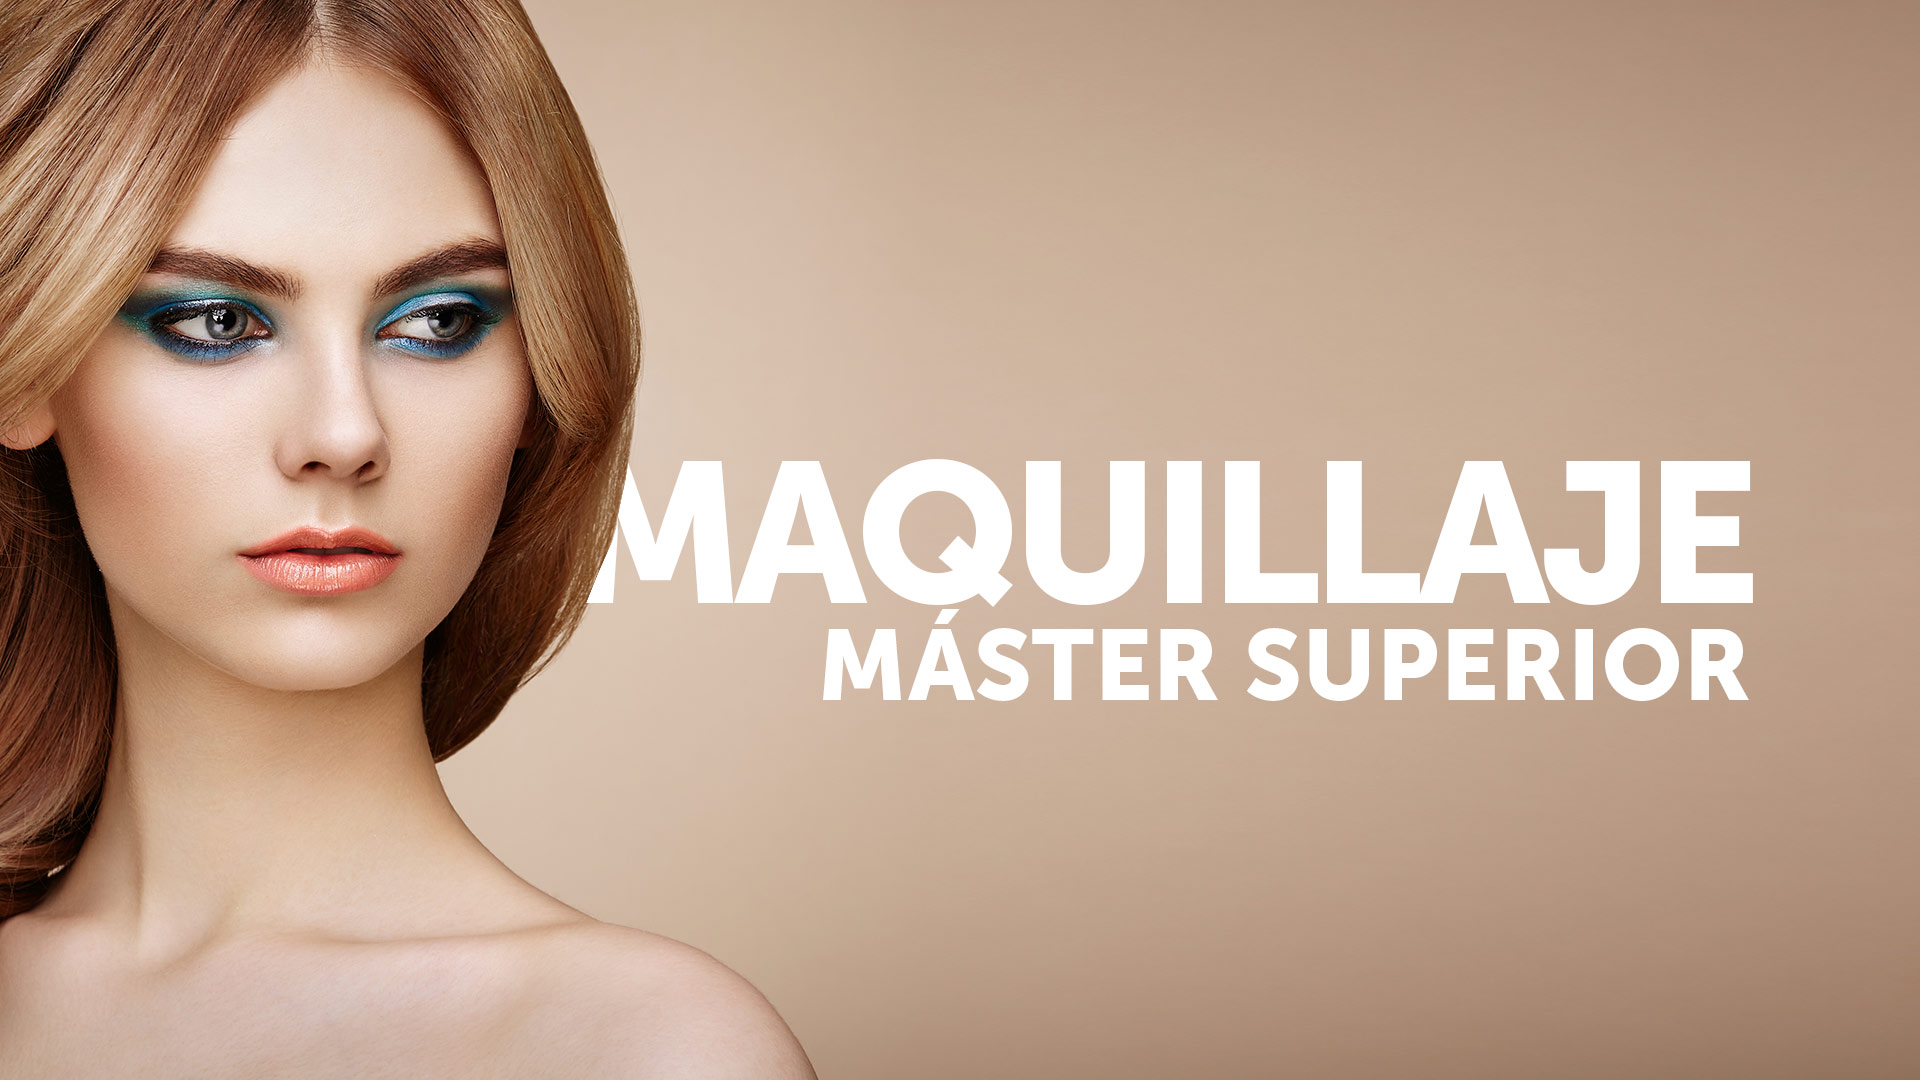 AS-Master-Superior-Maquillaje-Slide